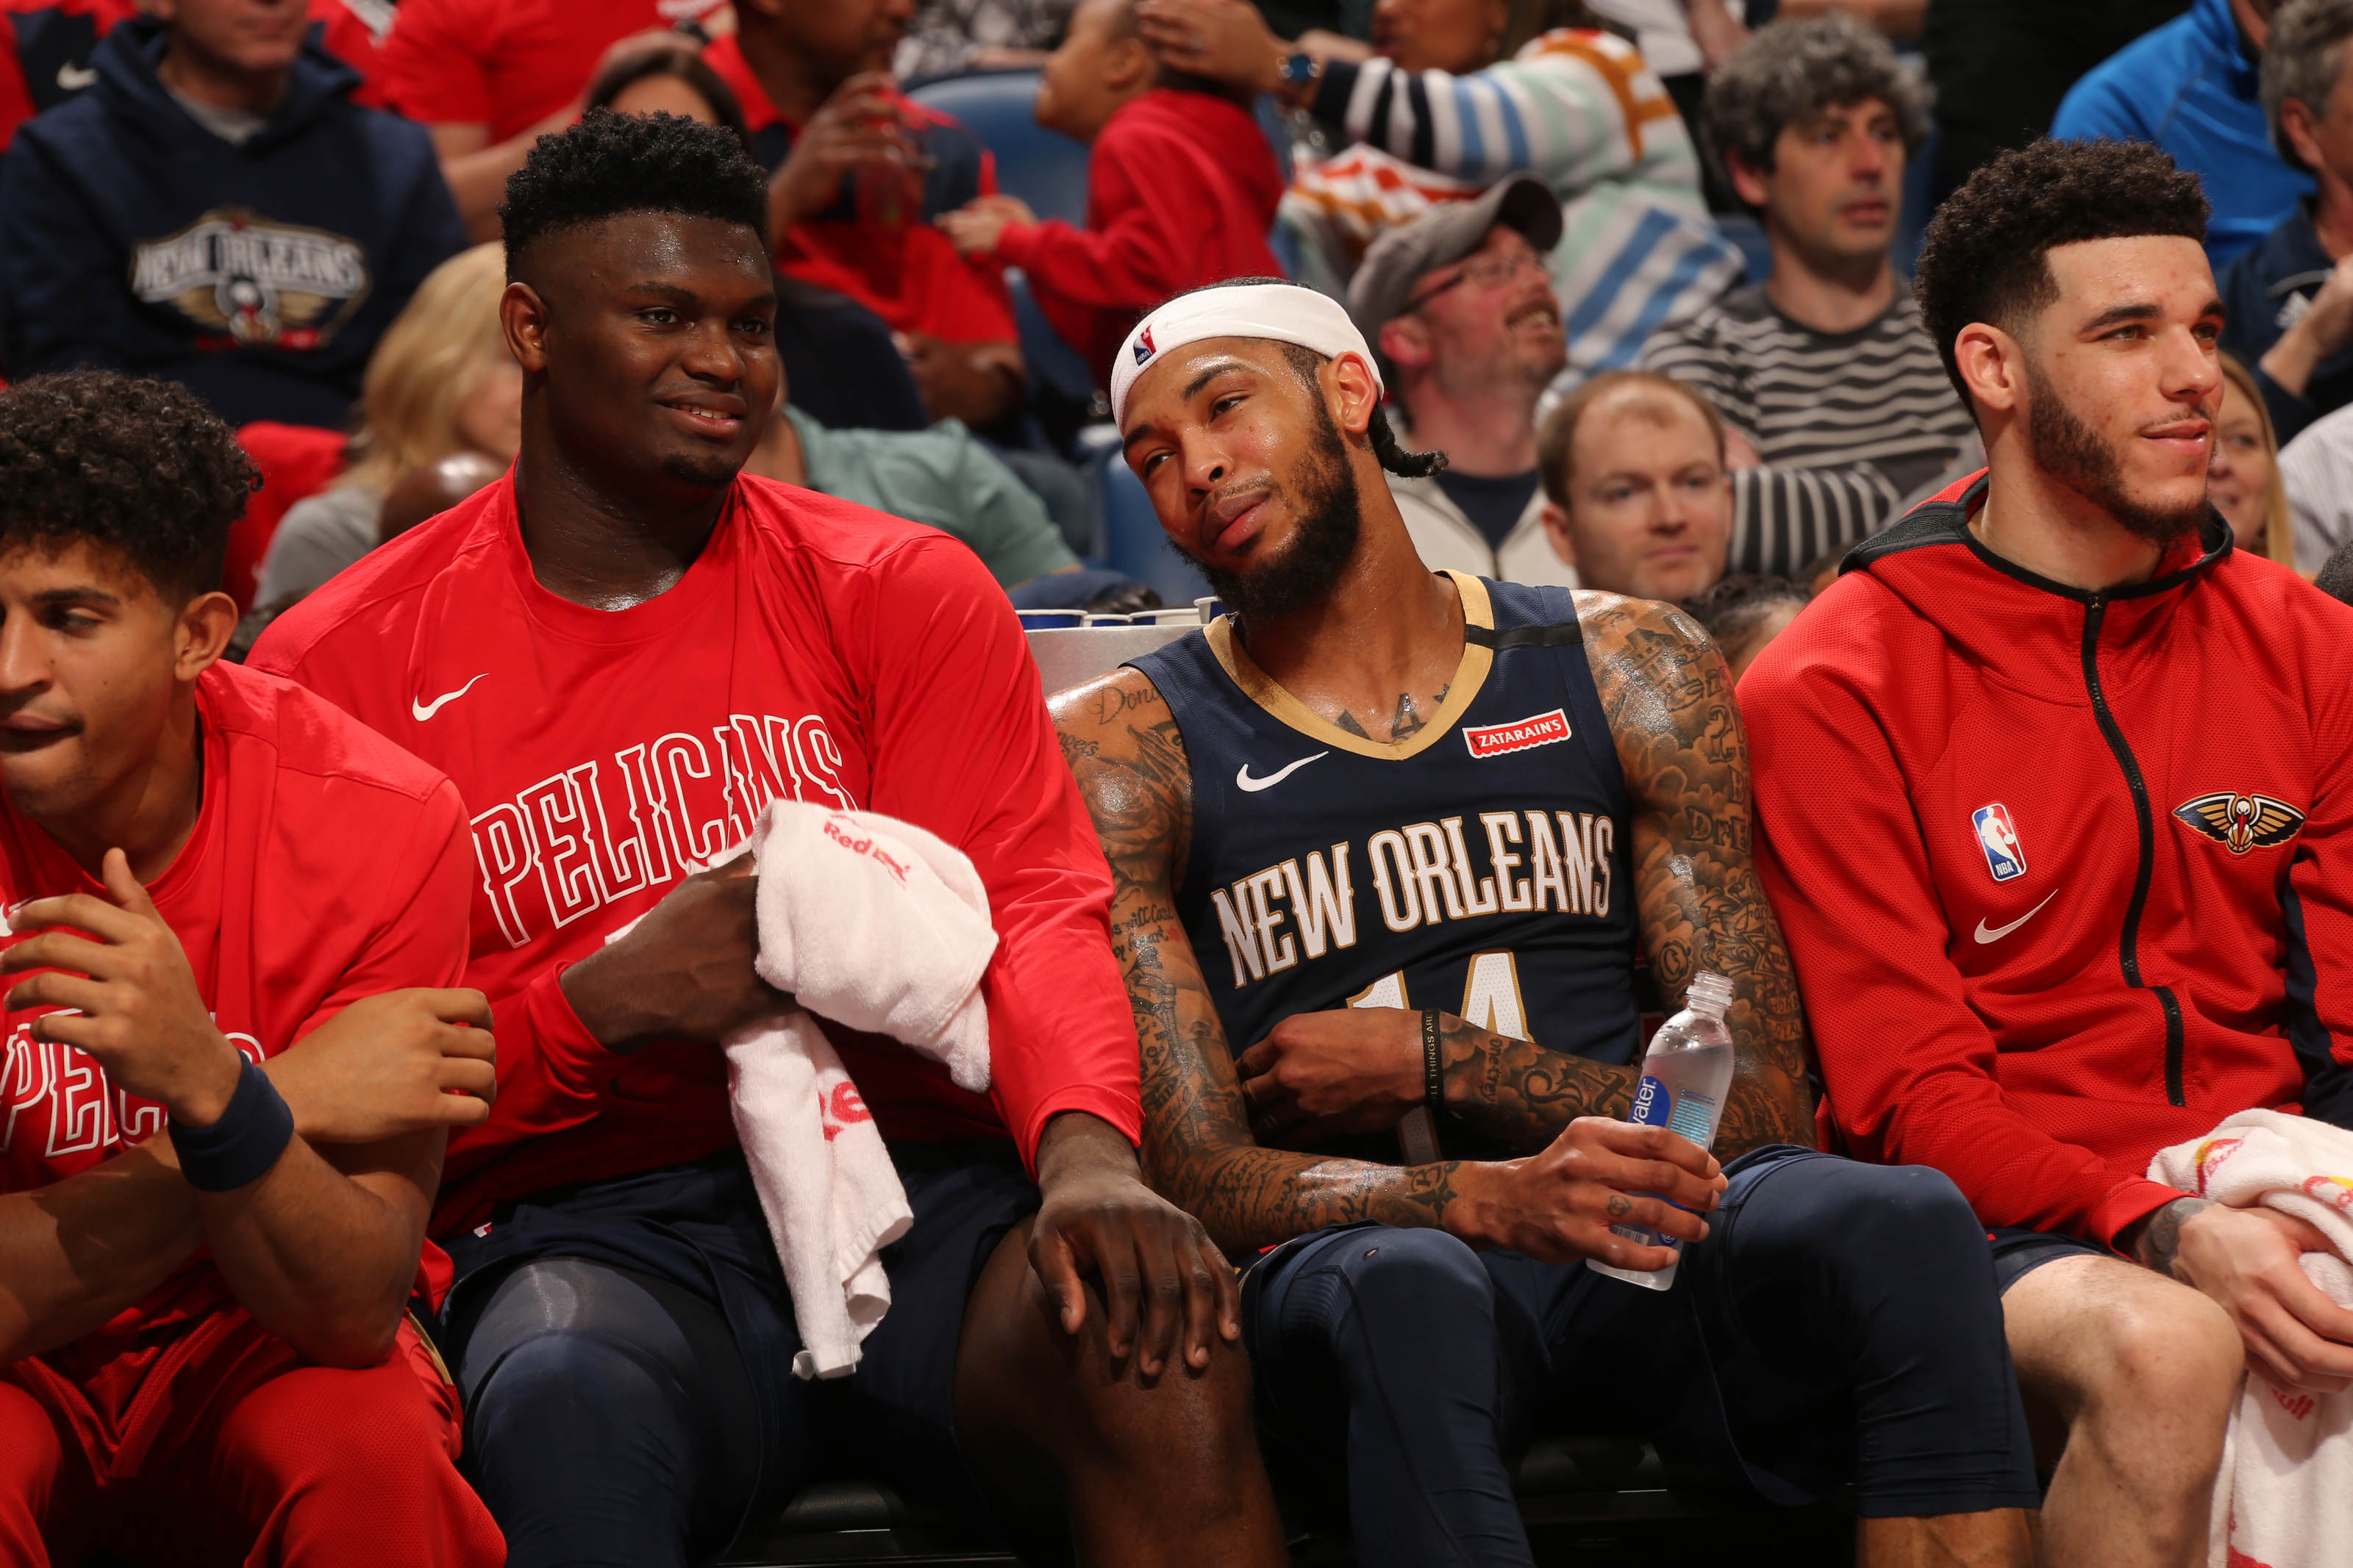 New Orleans Pelicans Use Extended All-Star Break to Rest and Regroup